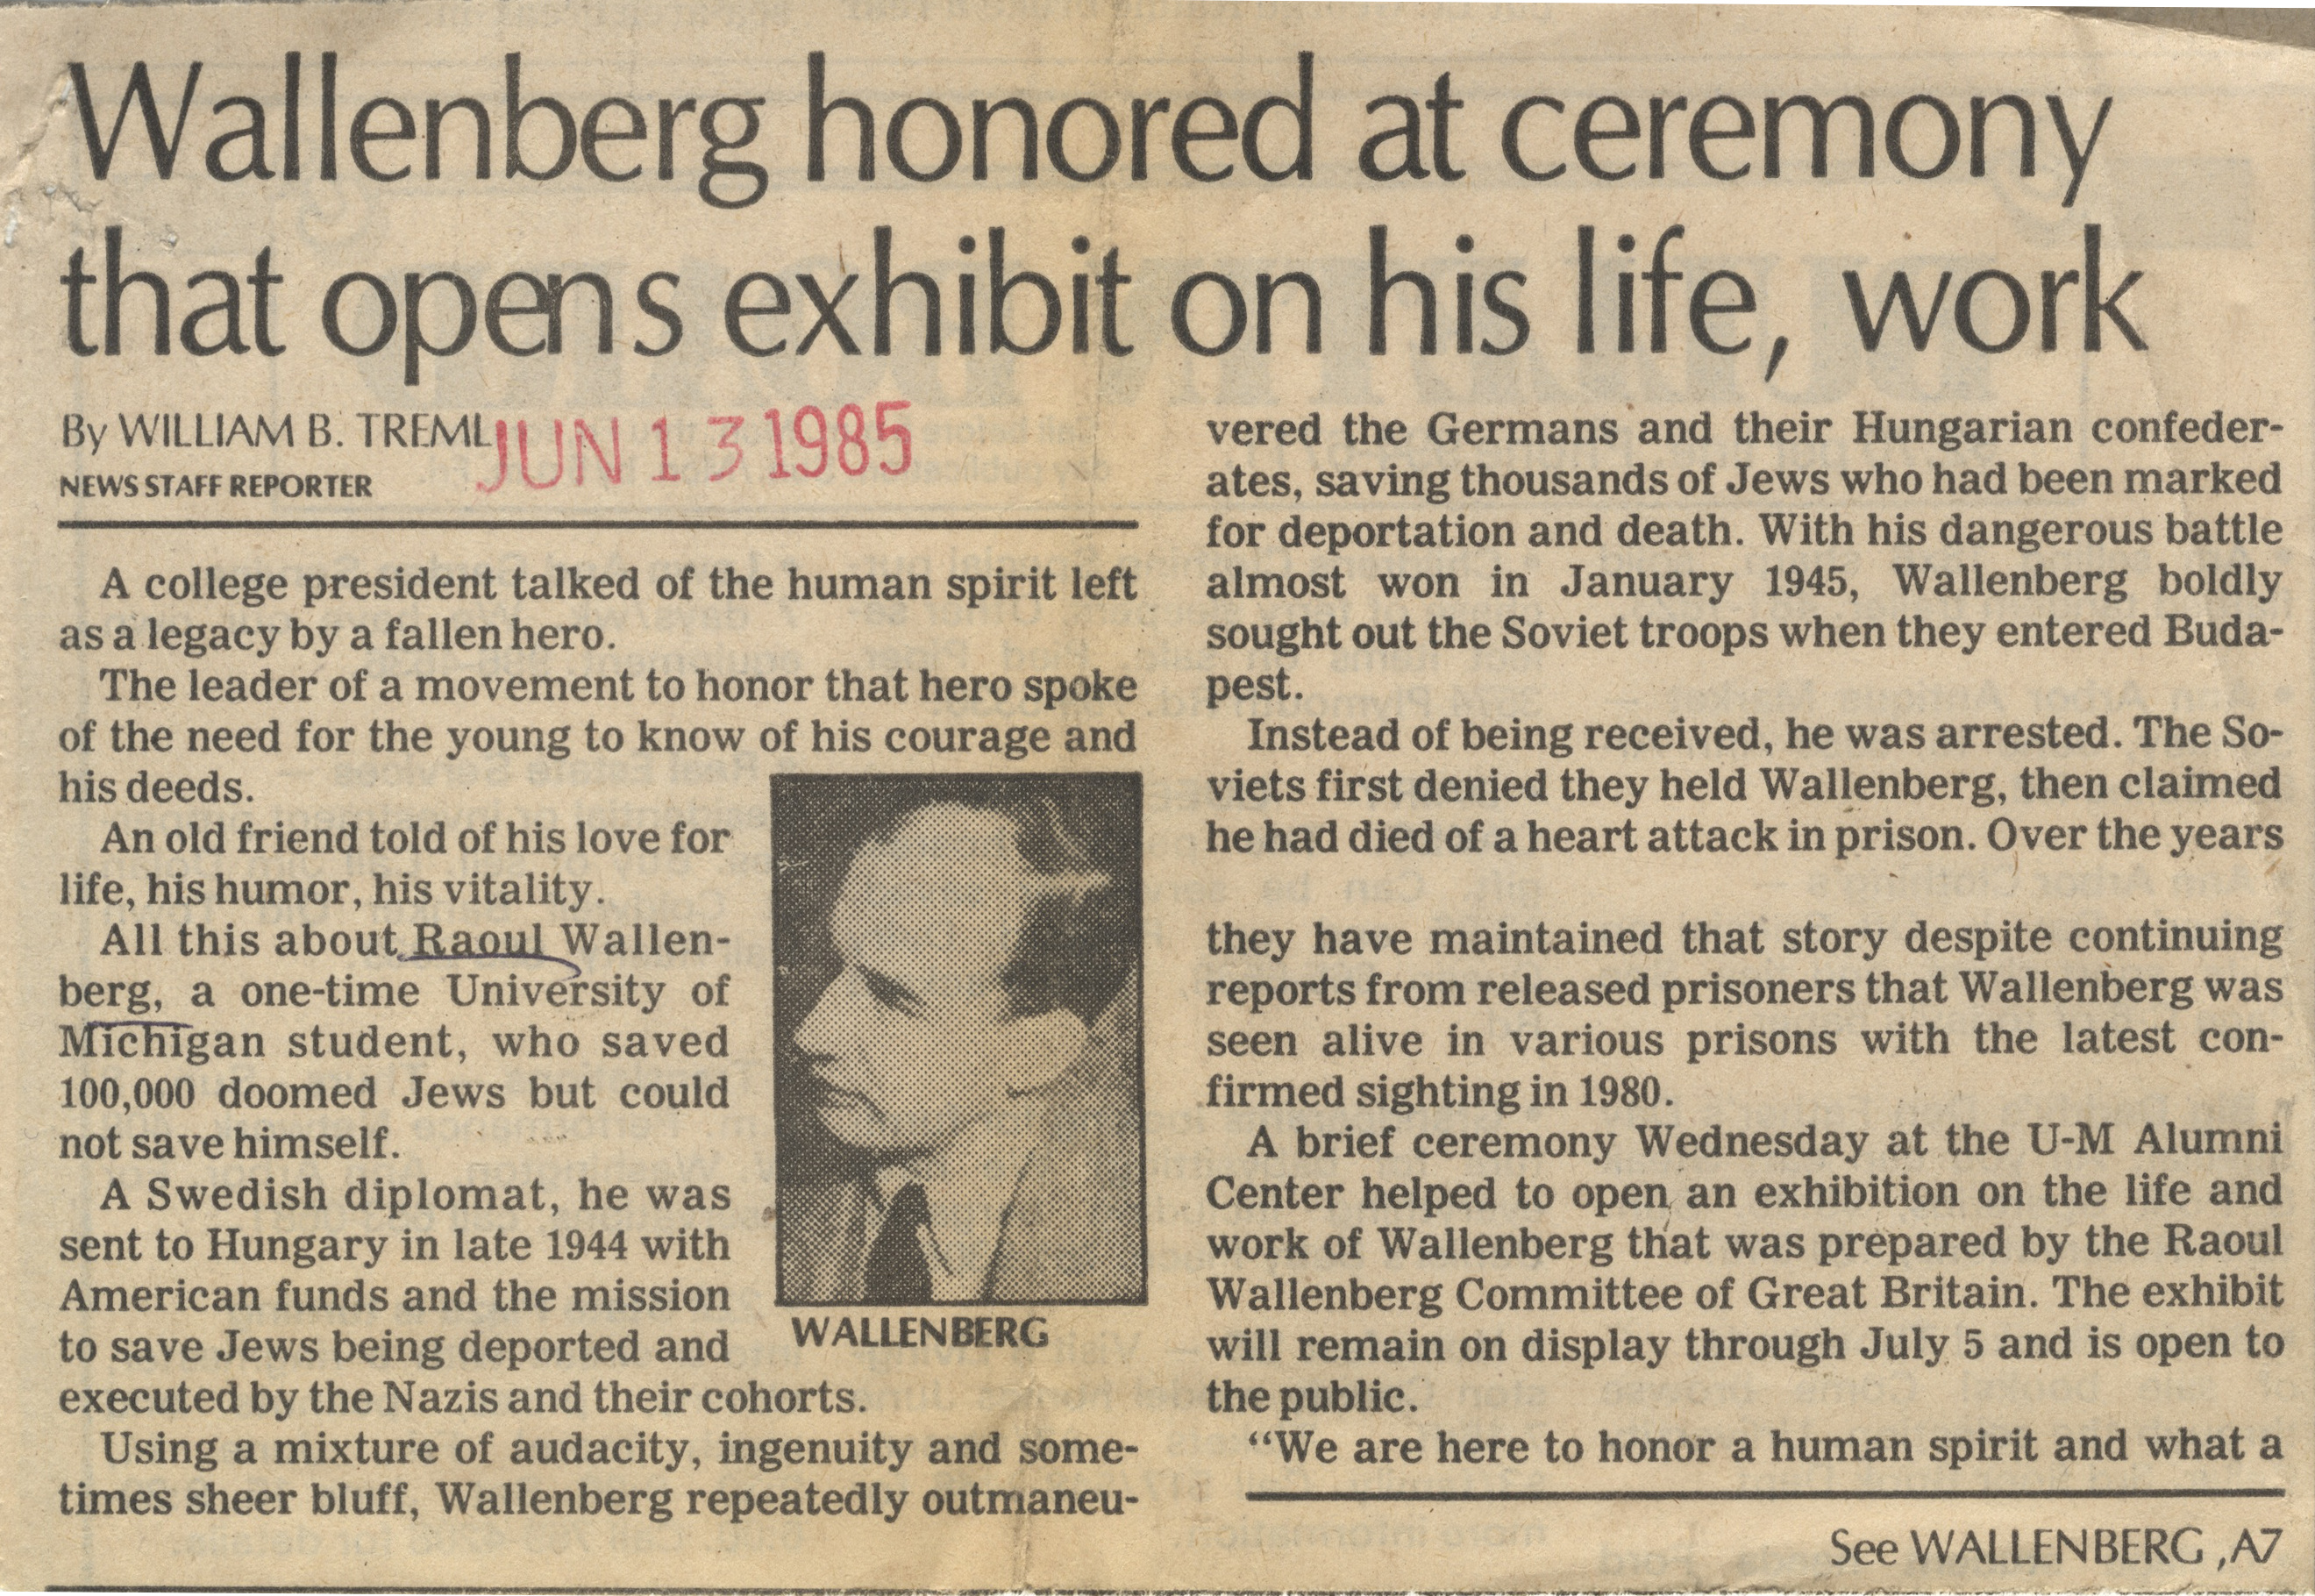 Wallenberg Honored At Ceremony That Opens Exhibit On His Life, Work image